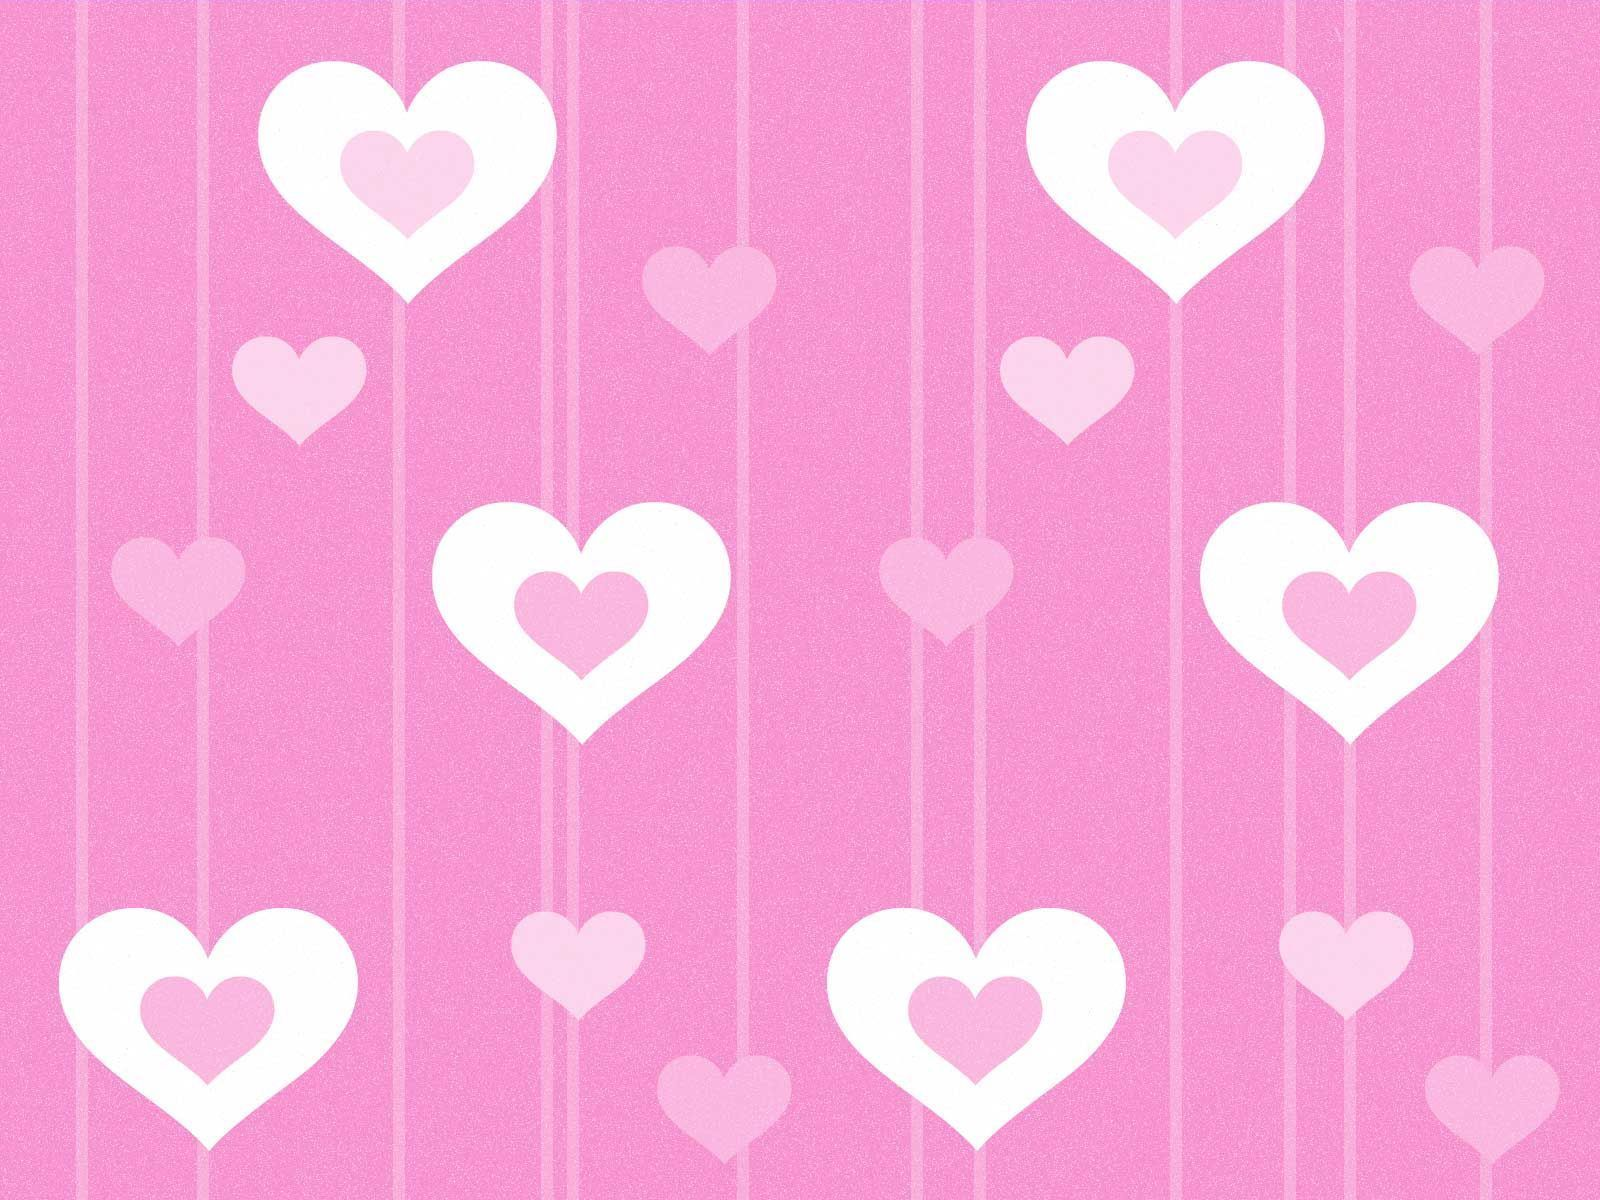 Love cute Heart Wallpaper : FOND D EcRAN//coeur rose